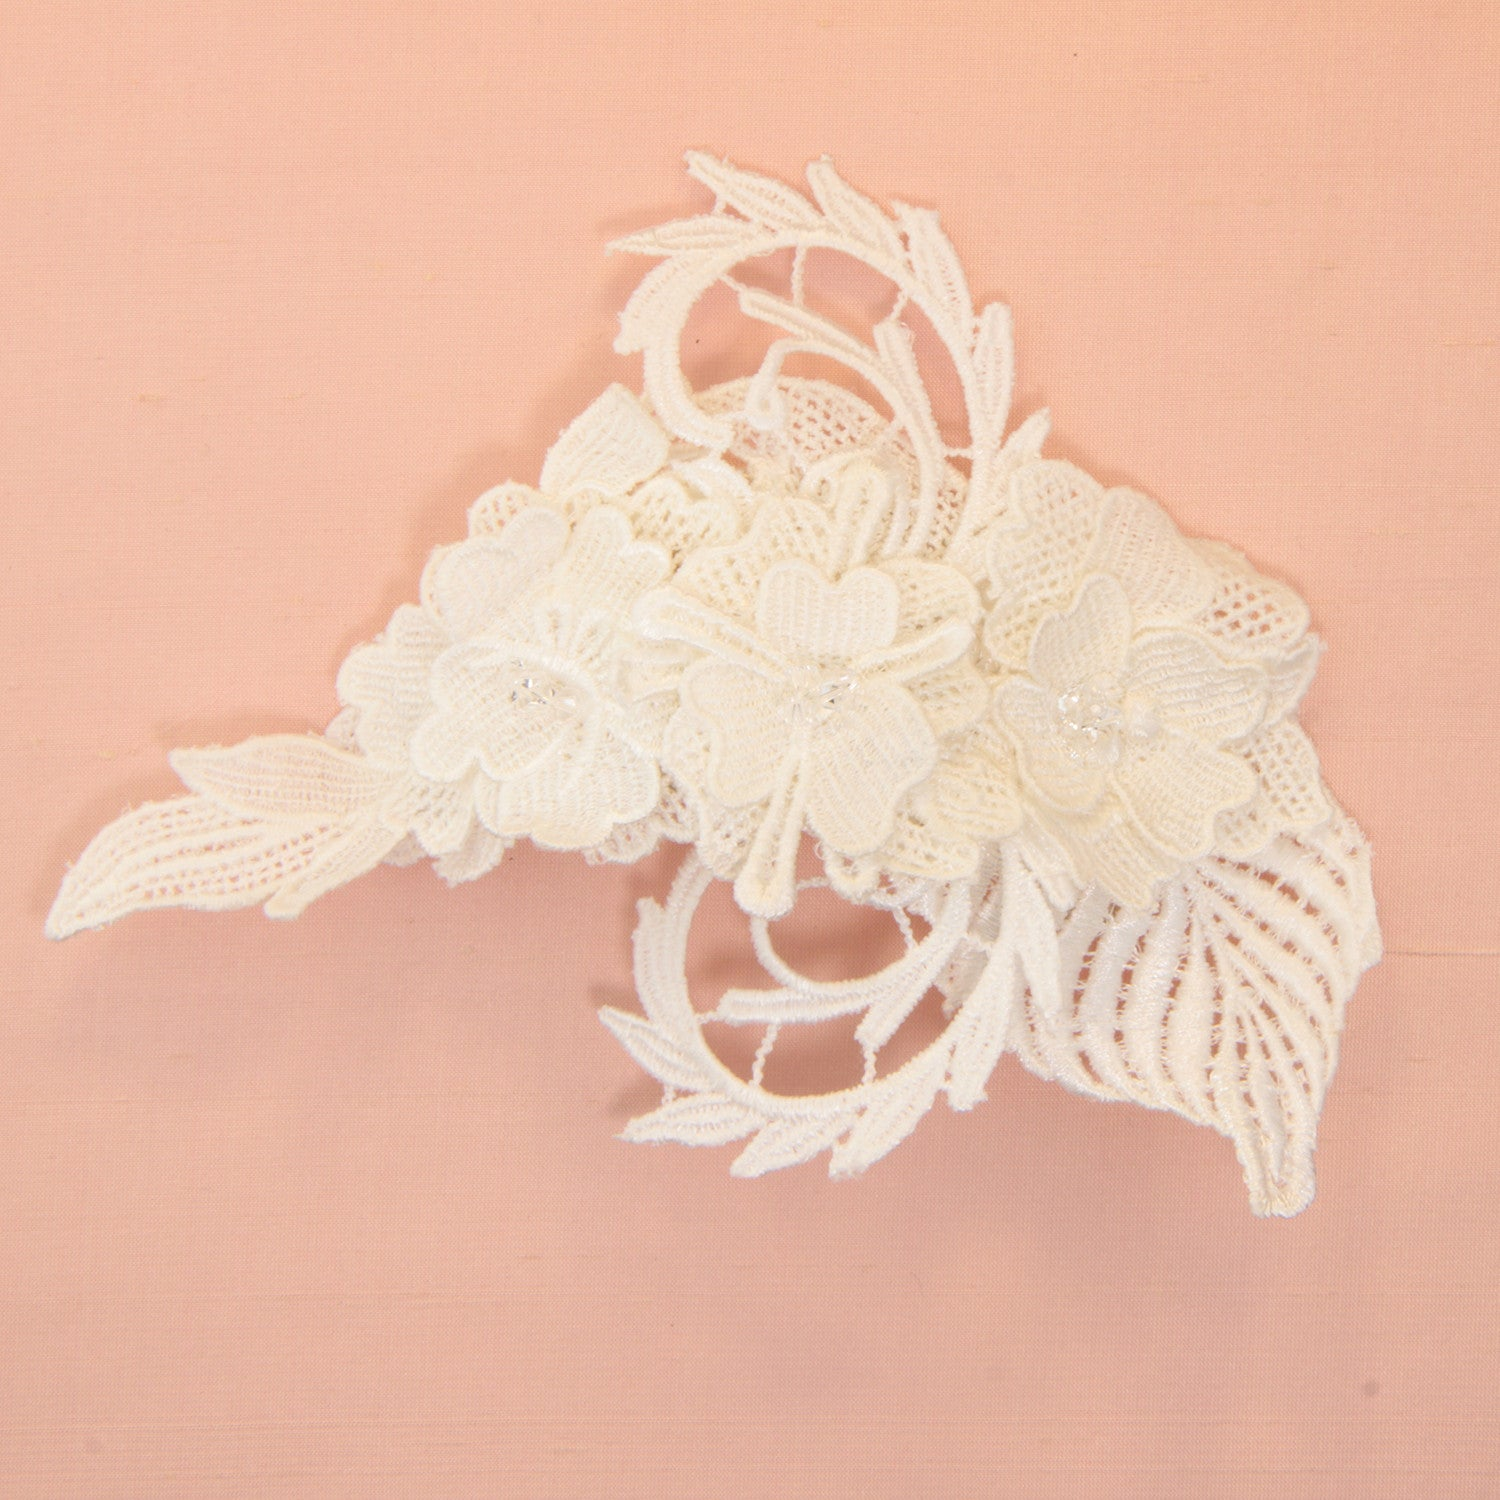 Mickie Bridal Headpiece - Hair Accessories - Headpieces - Roman & French